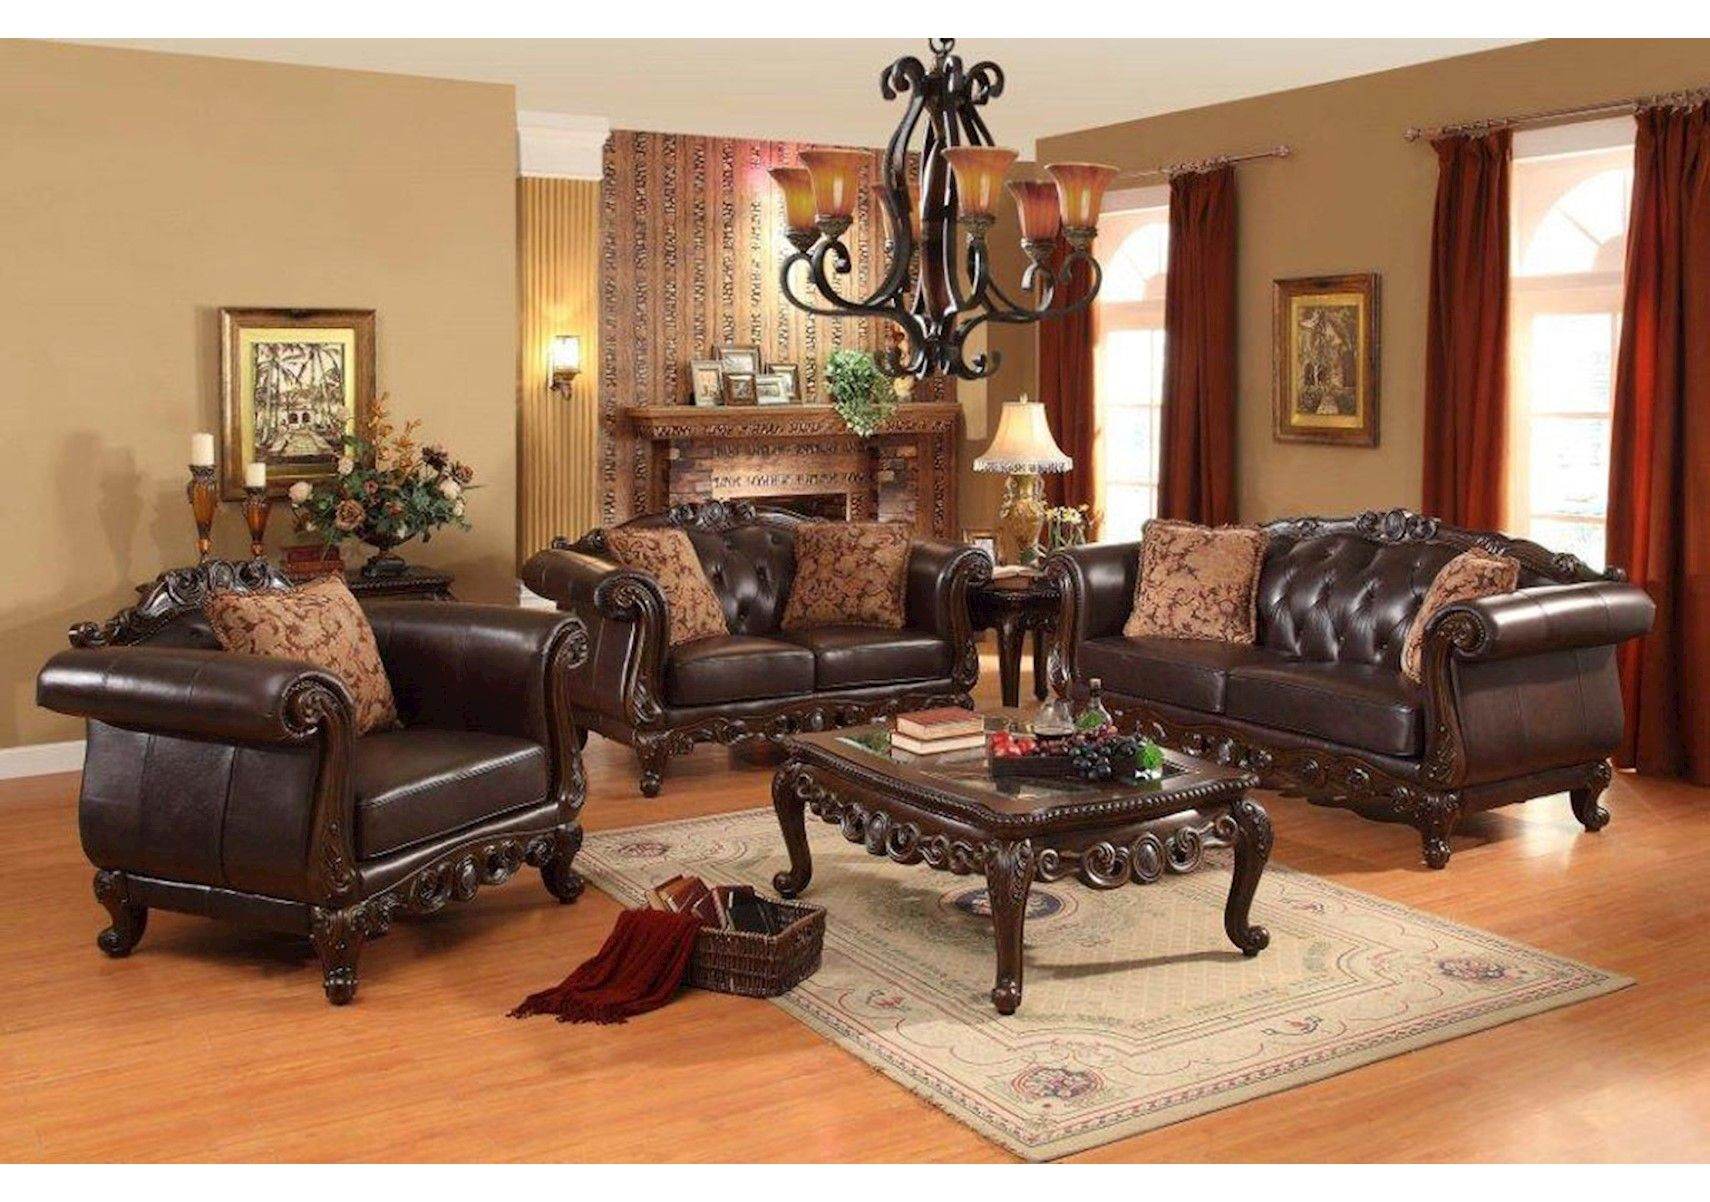 Lacks Chelsea 2 Pc Living Room Set Traditional Style Home